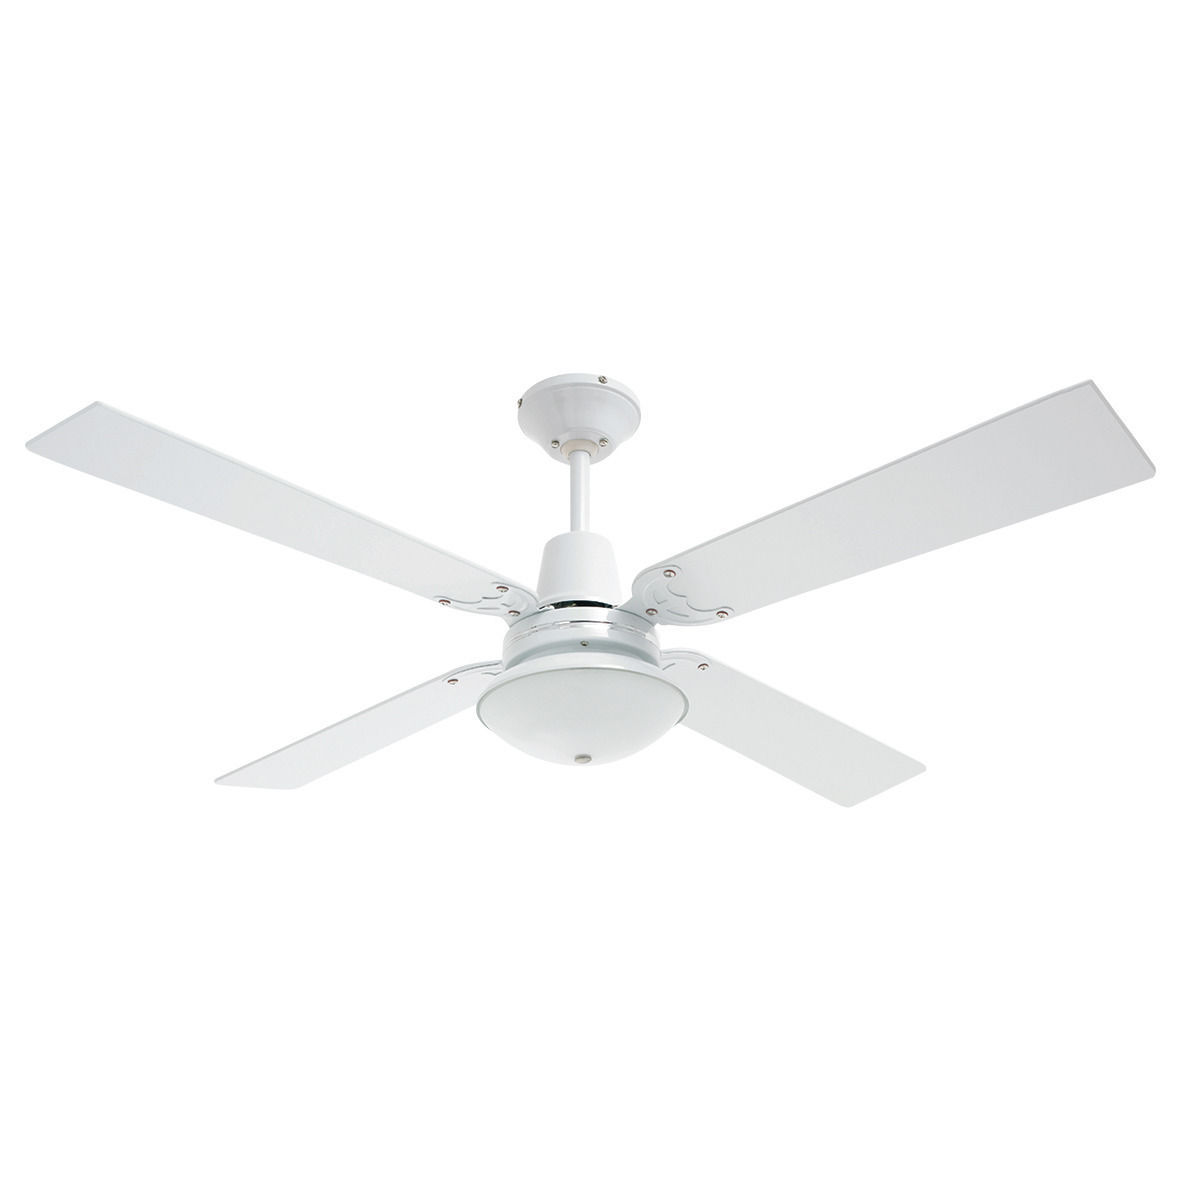 HELLER 4 Blade Maxwell Ceiling Fan with Light